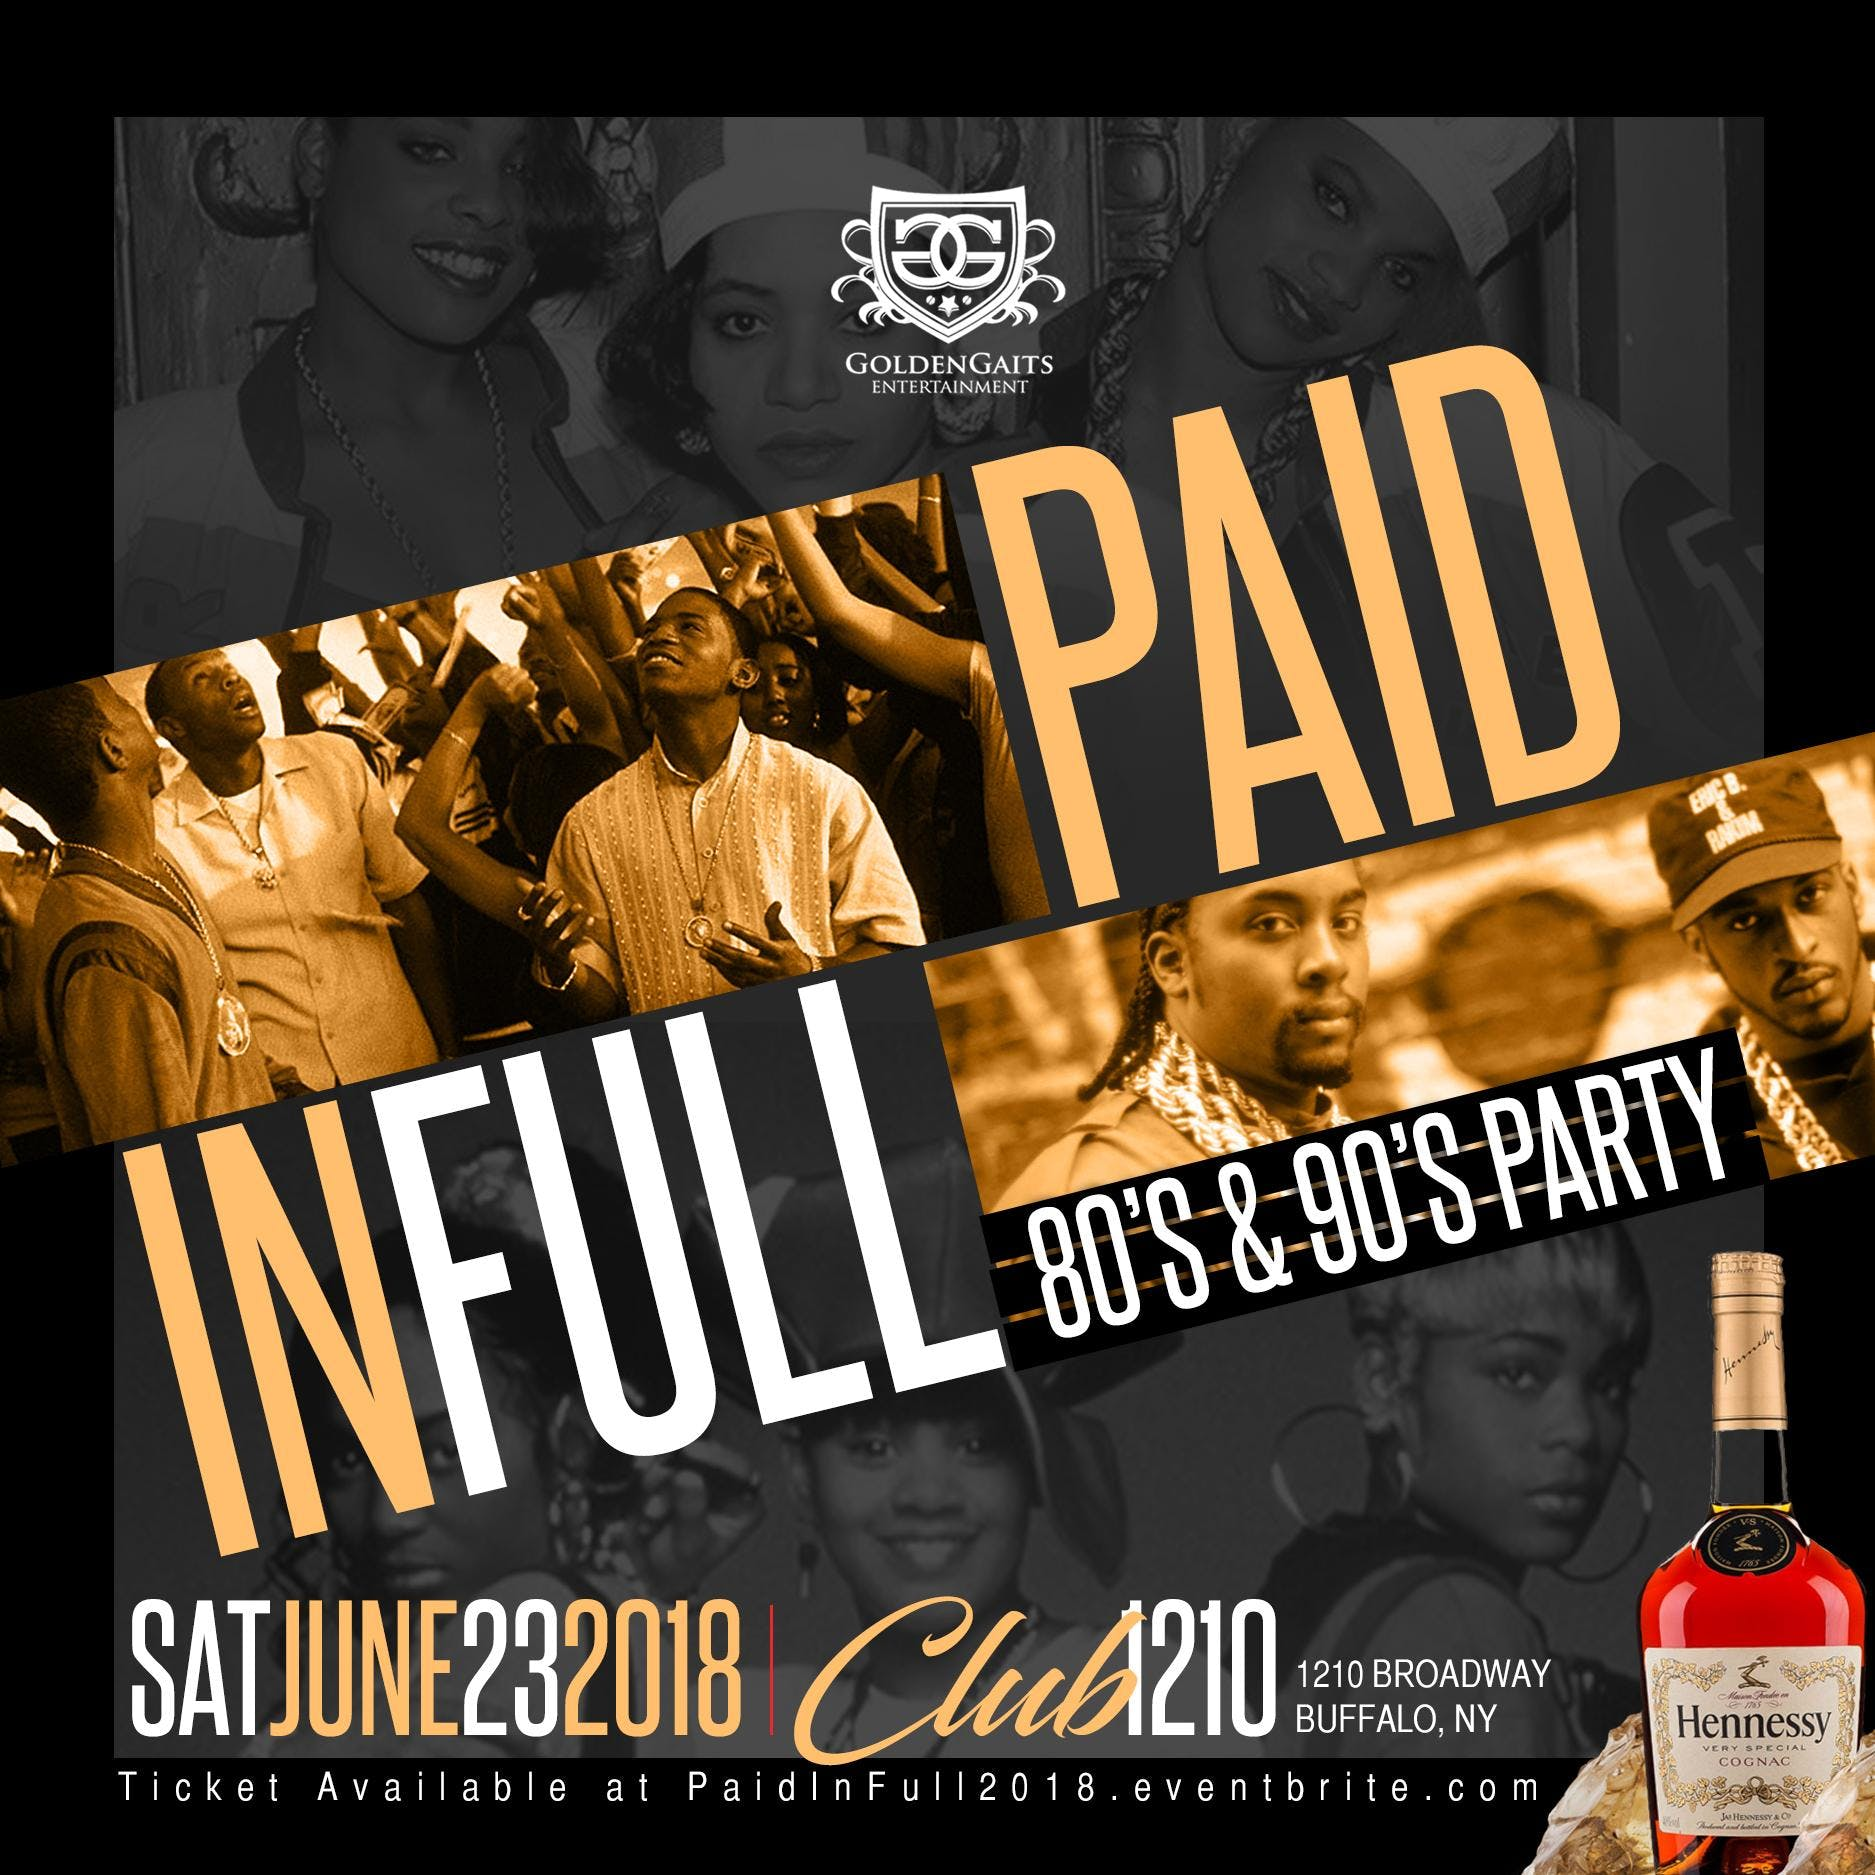 Paid In Full - 80s & 90s Party